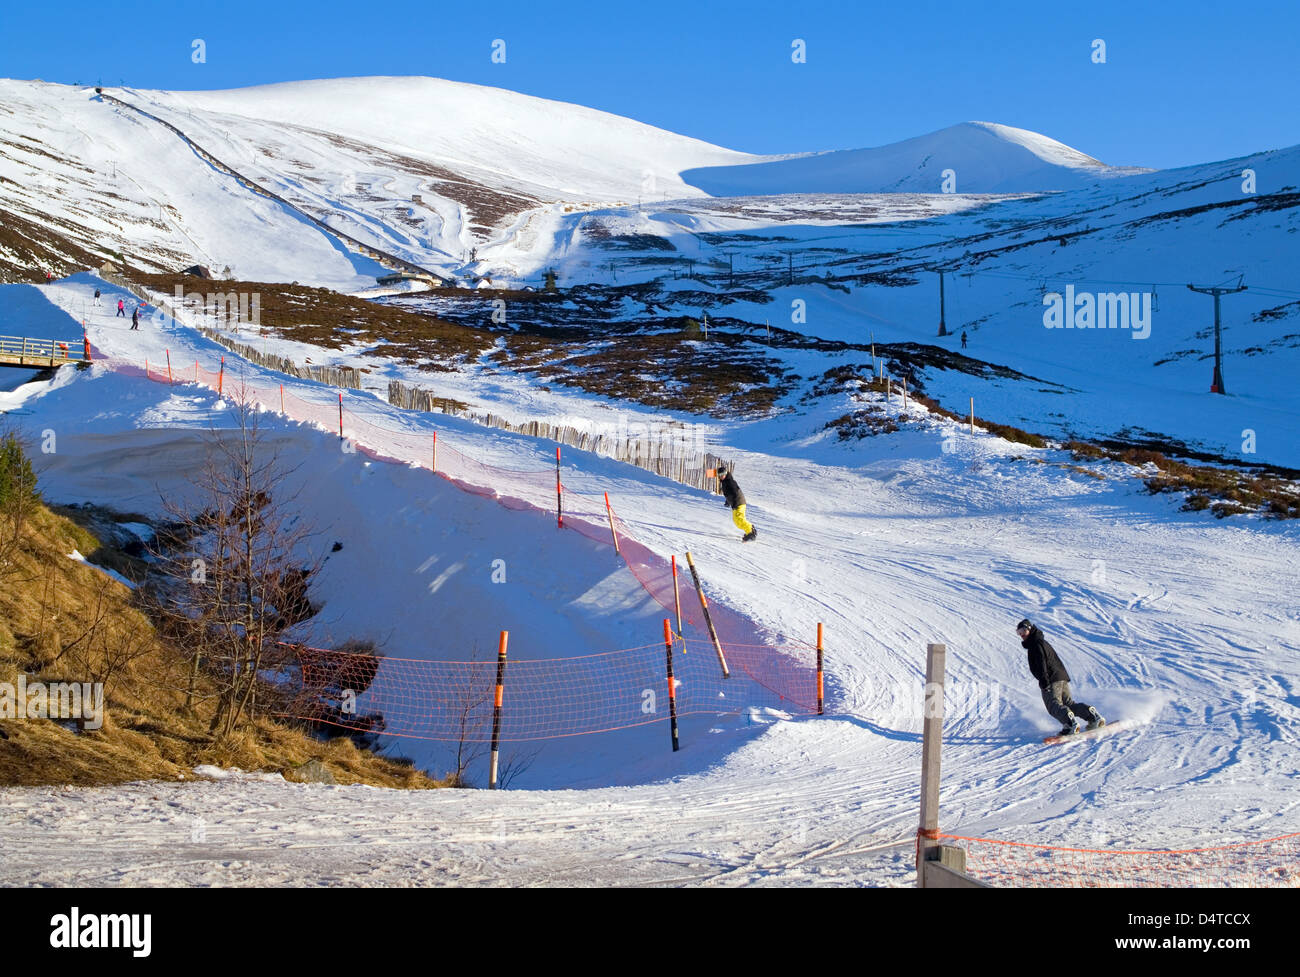 Snowboarders and skiers on Burnside ski run, Cairngorm Mountain Ski Centre, by Aviemore, Cairngorms National Park, - Stock Image